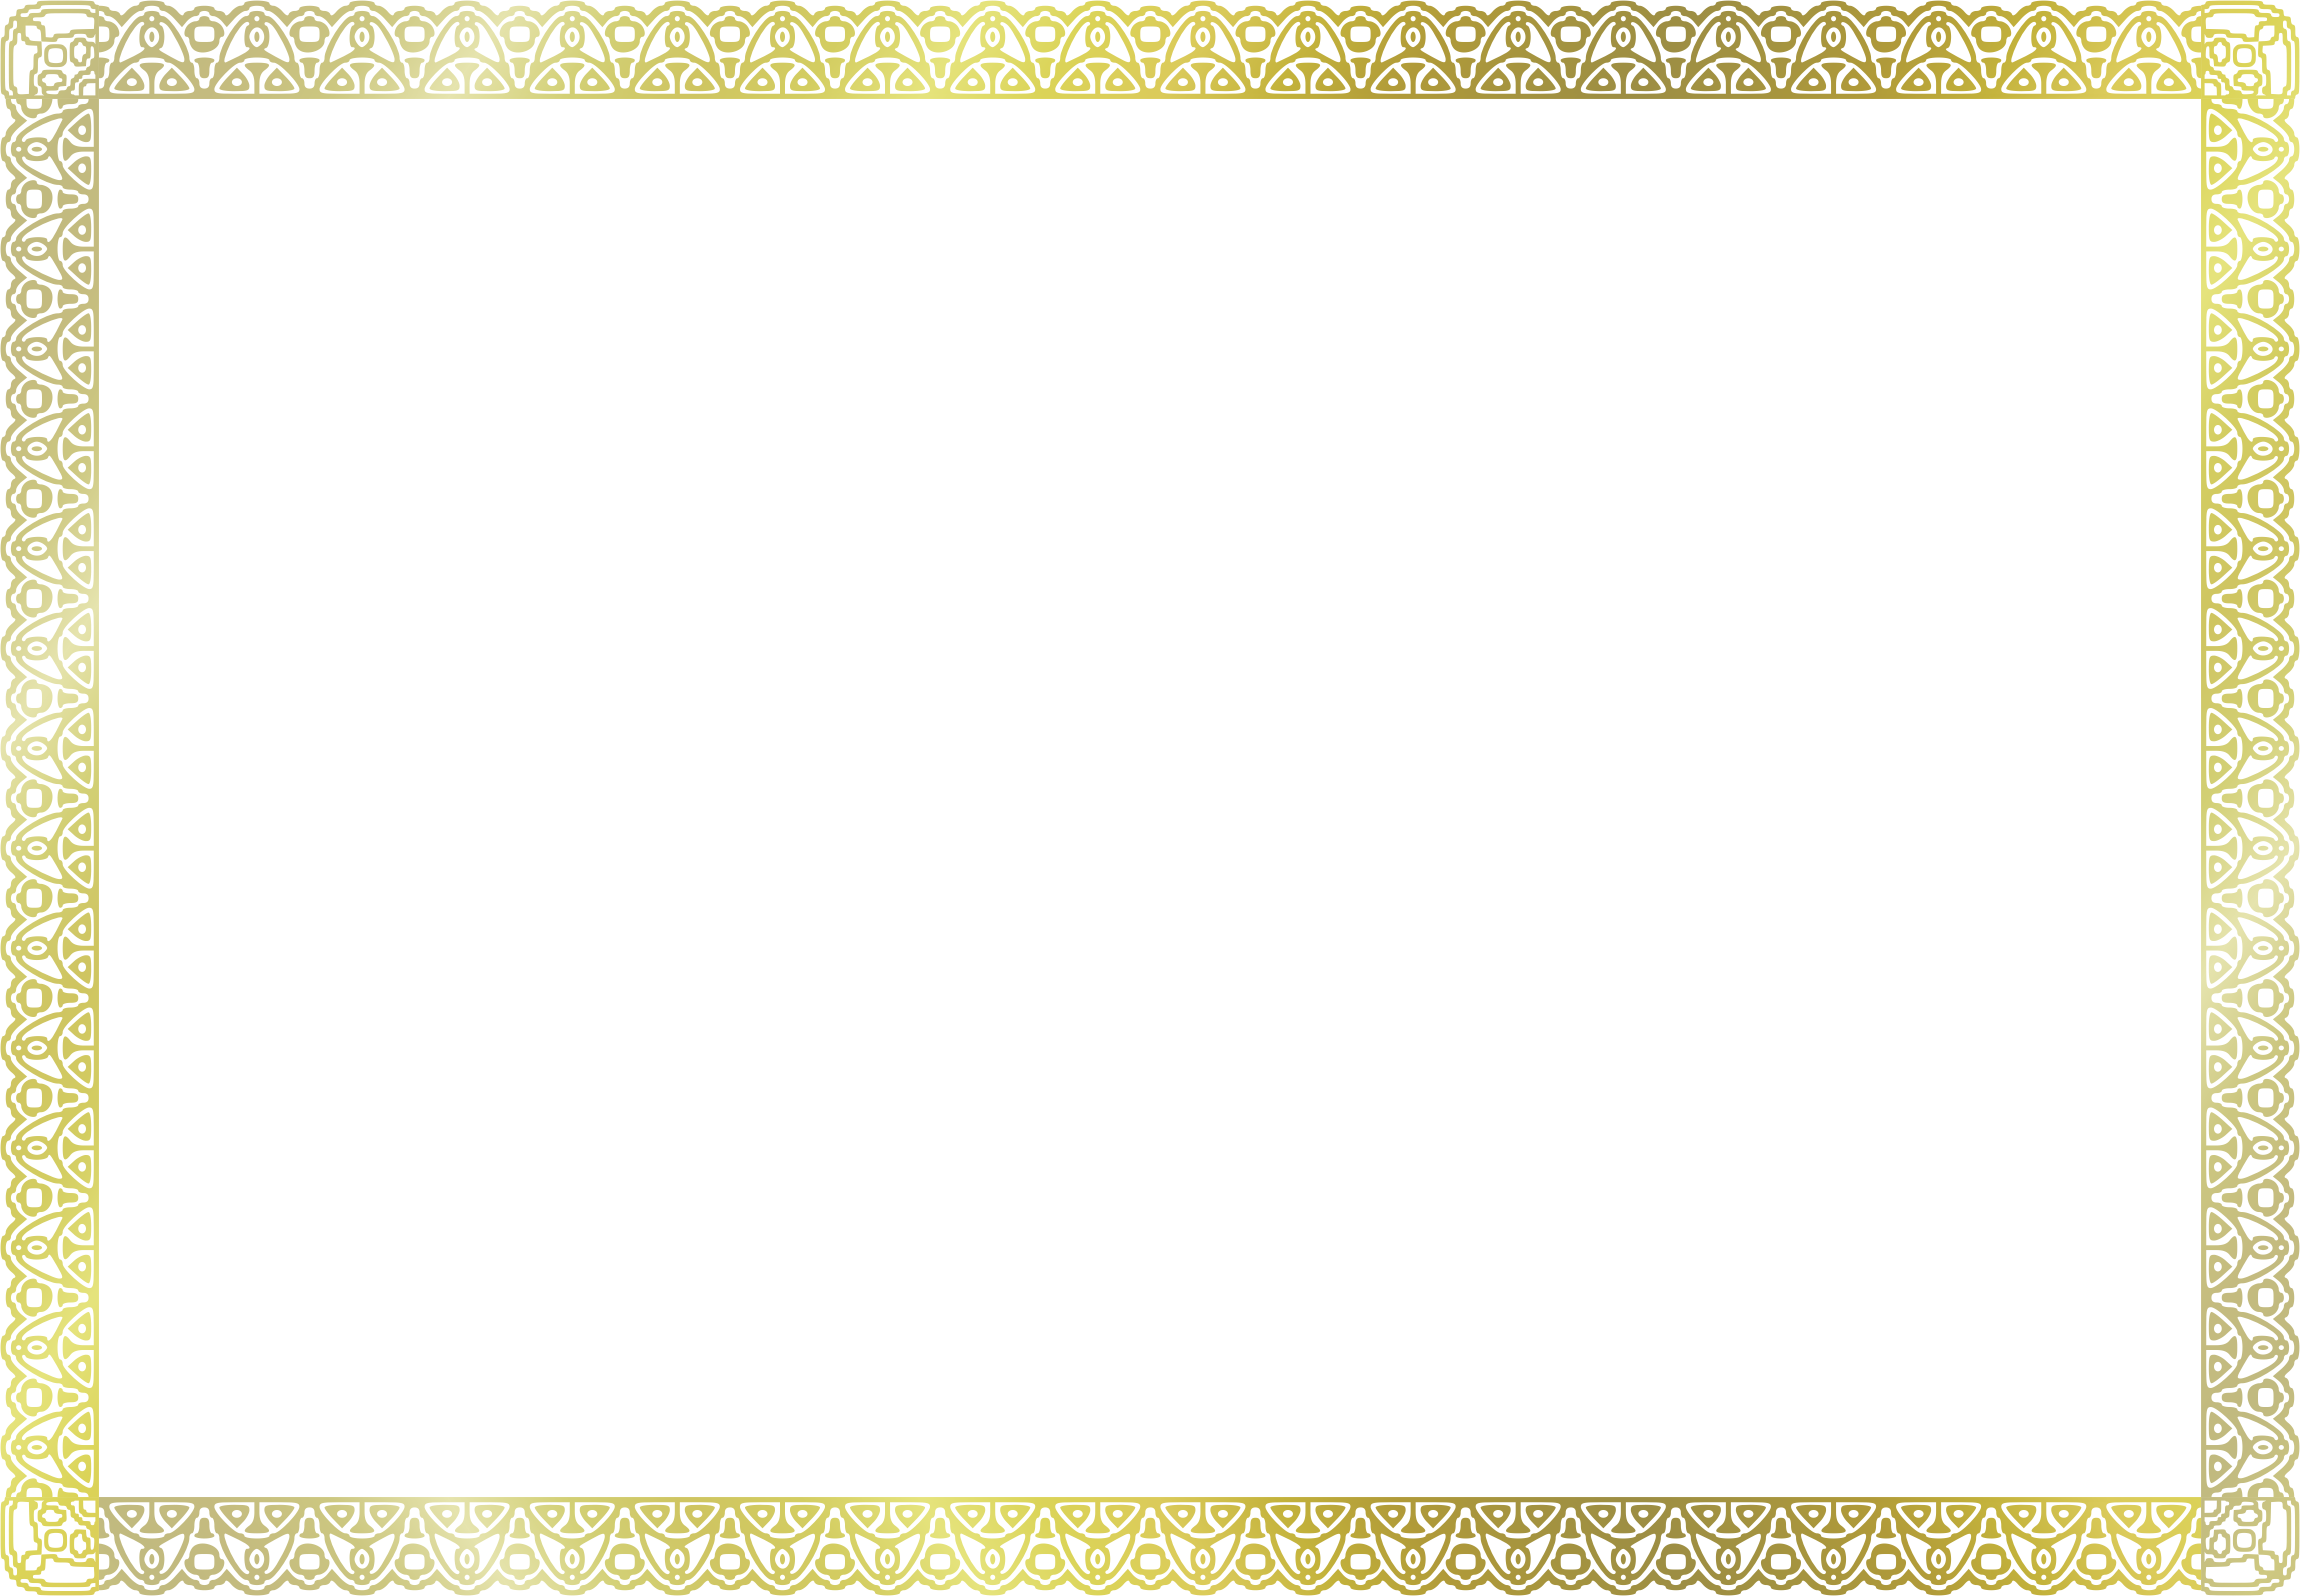 Certificate border png. Clipart a size big